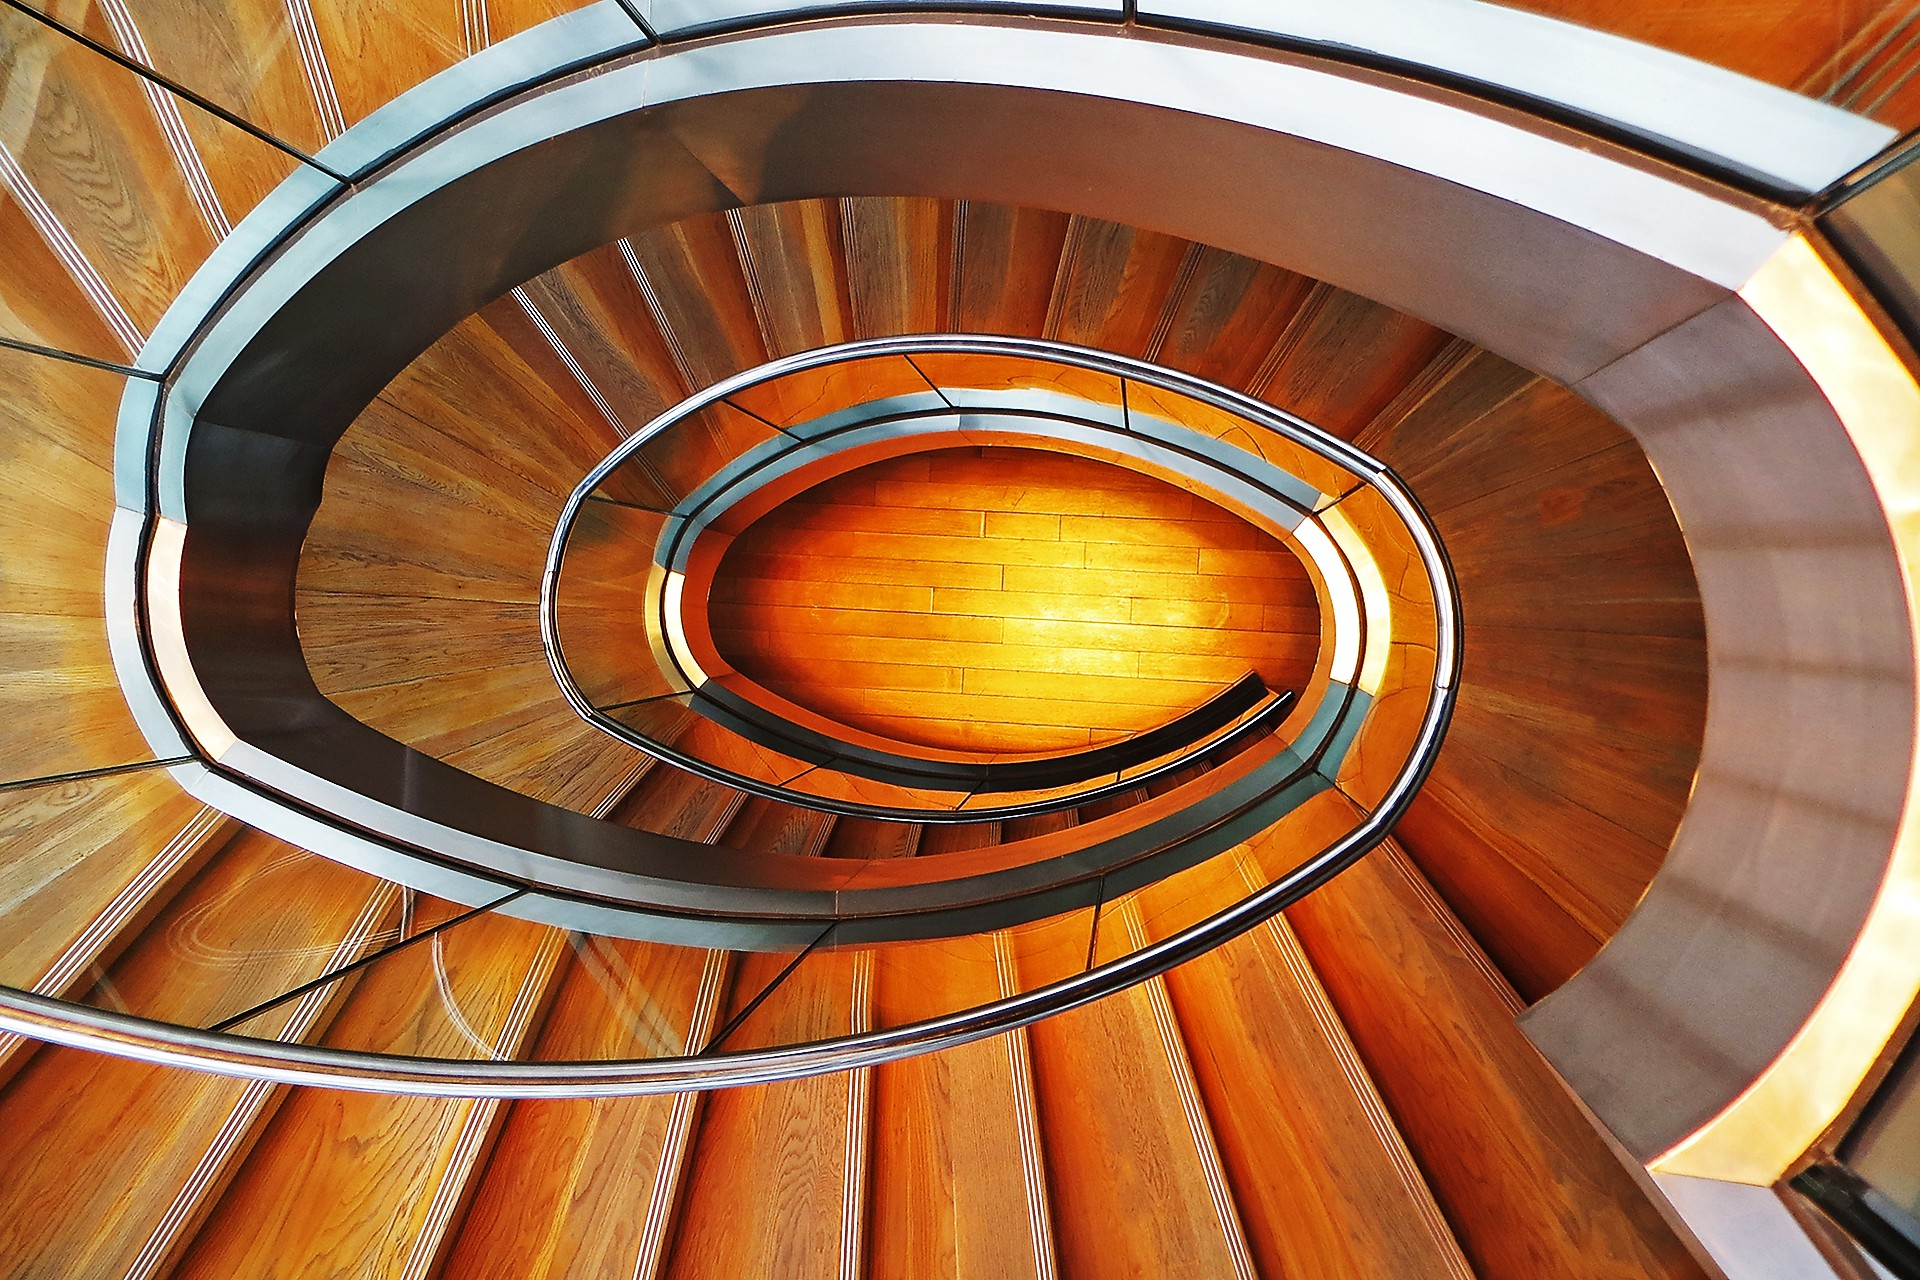 Downward view of a large spiral staircase